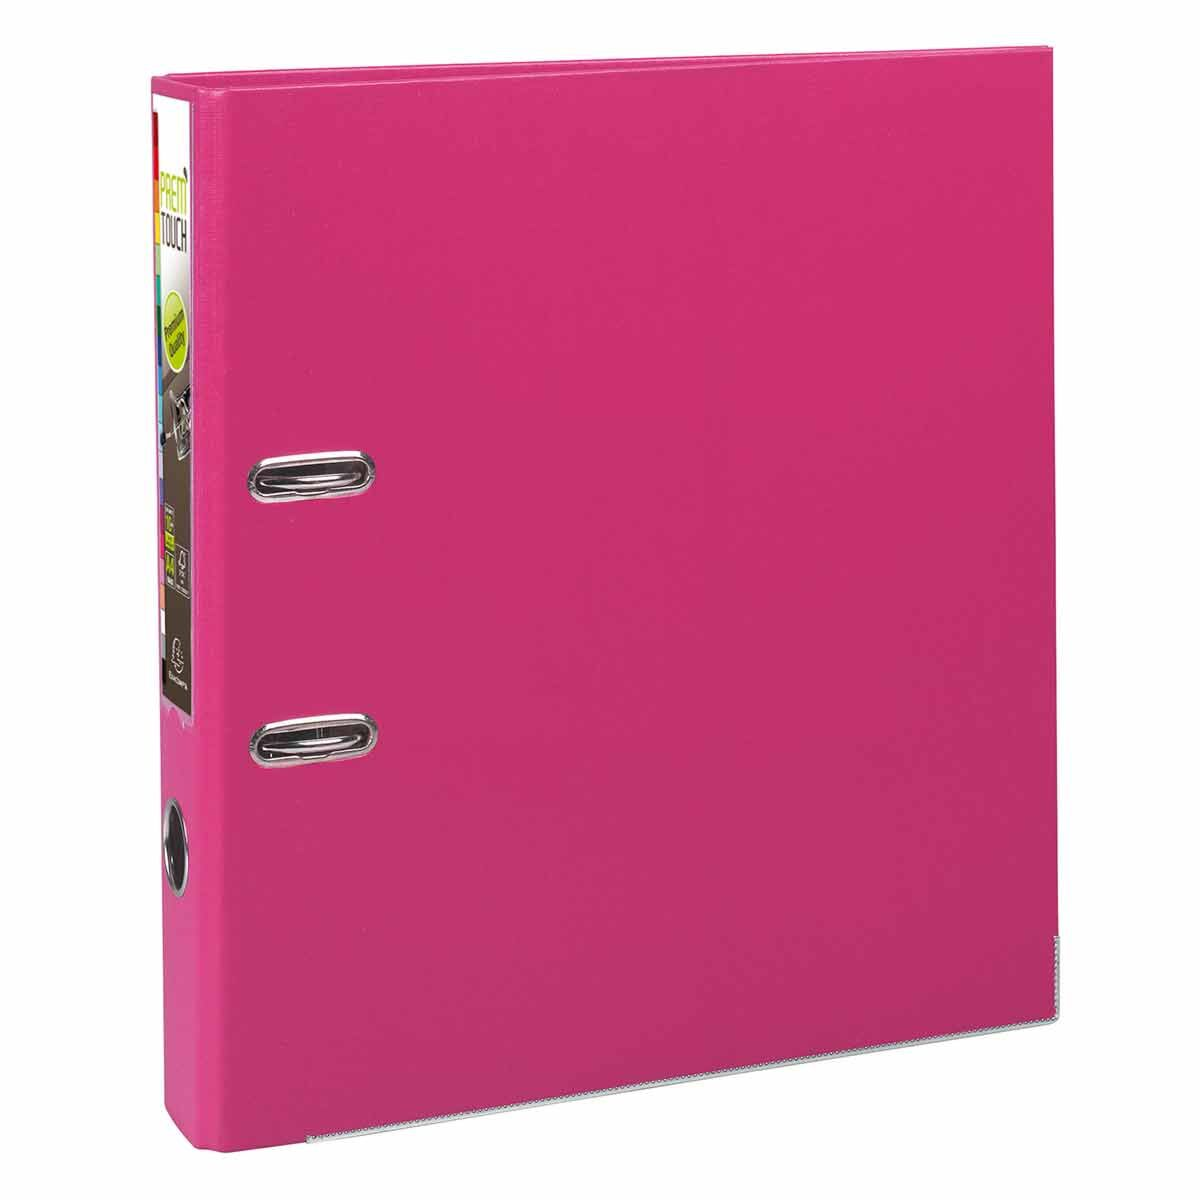 Exacompta PremTouch Lever Arch File A4 Plus PP 50mm Pack of 10 Raspberry